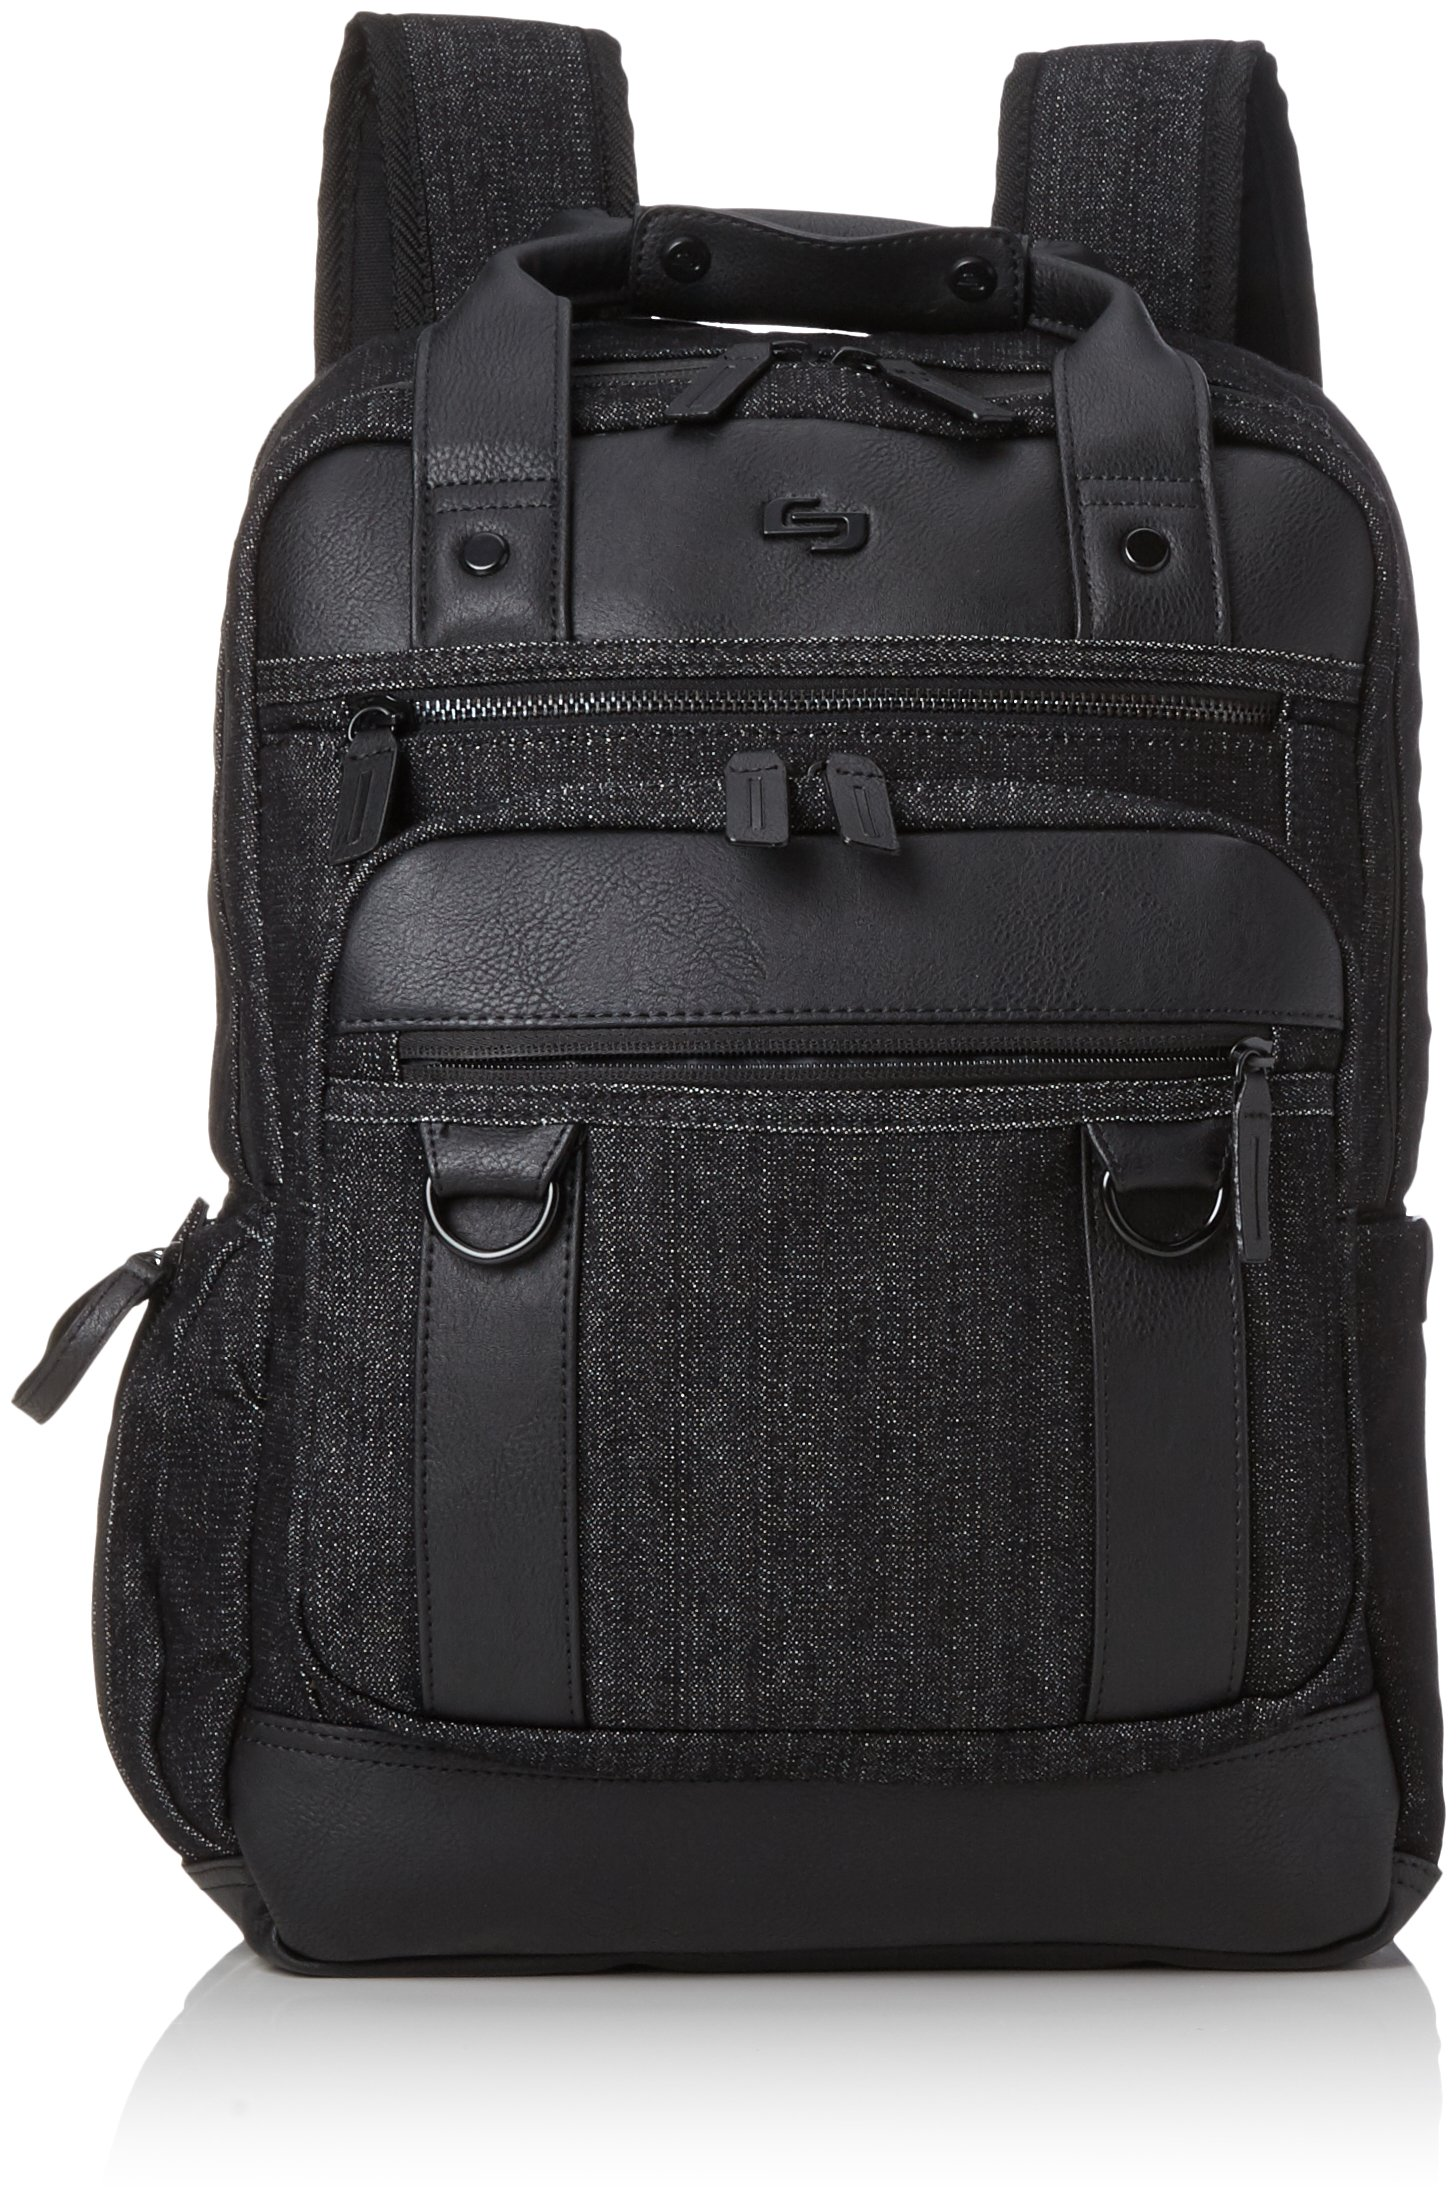 Solo Crosby 15.6 Inch Laptop Backpack with Padded Compartment, Black